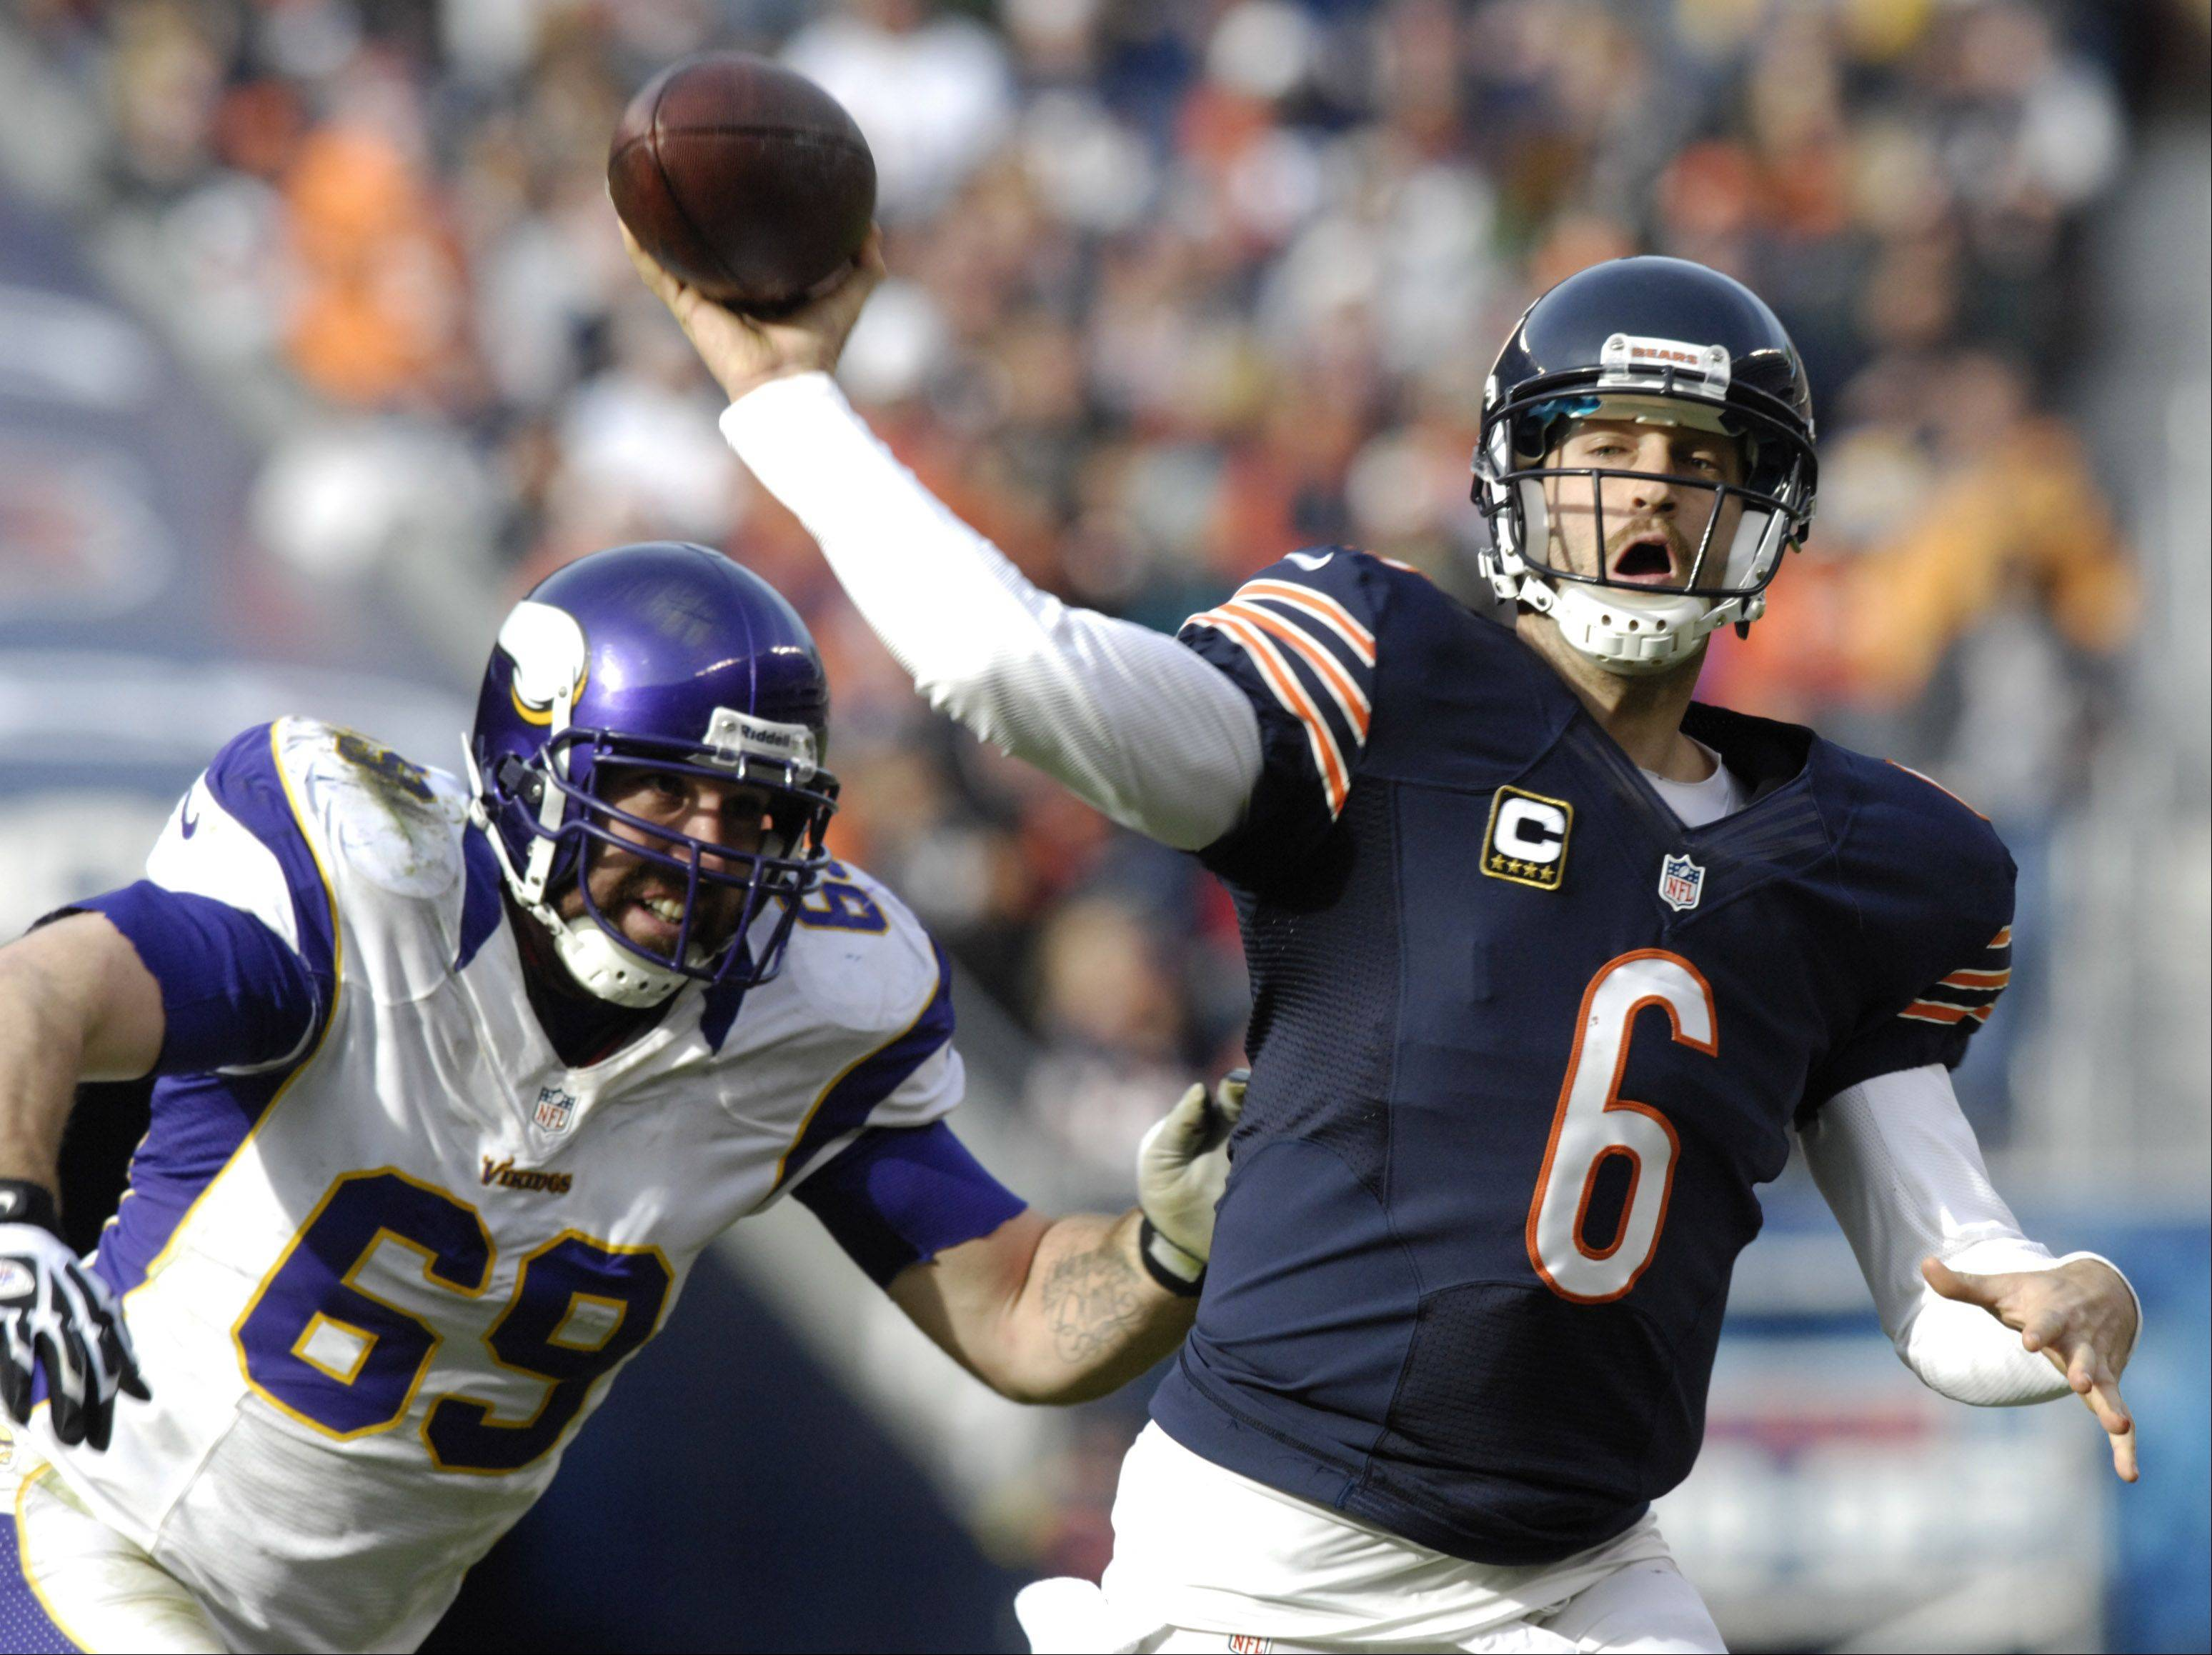 Bears quarterback Jay Cutler throws a second-quarter touchdown pass to tight end Matt Spaeth while being pursued by Minnesota Vikings defensive tackle Jared Allen on Sunday at Soldier Field.